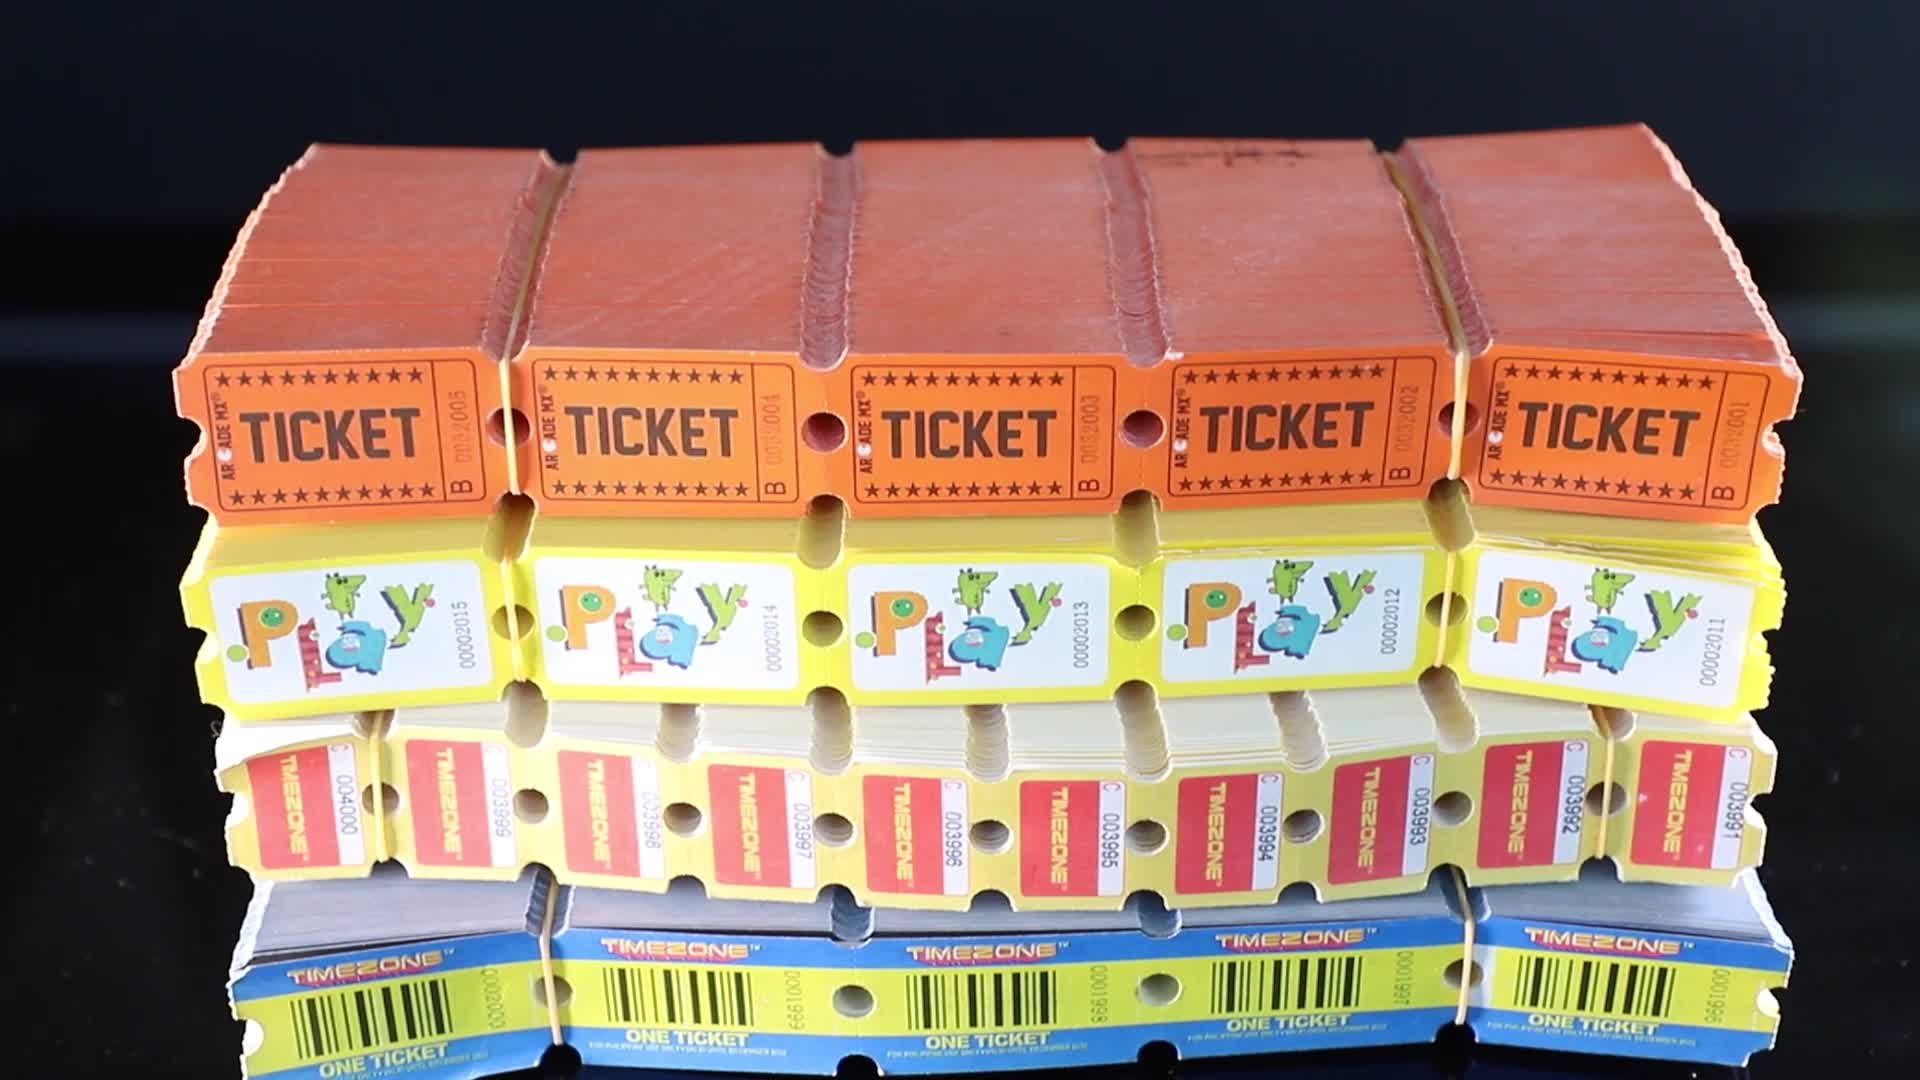 Ticket arcade prijs verlossing polsband ticket cinema ticket